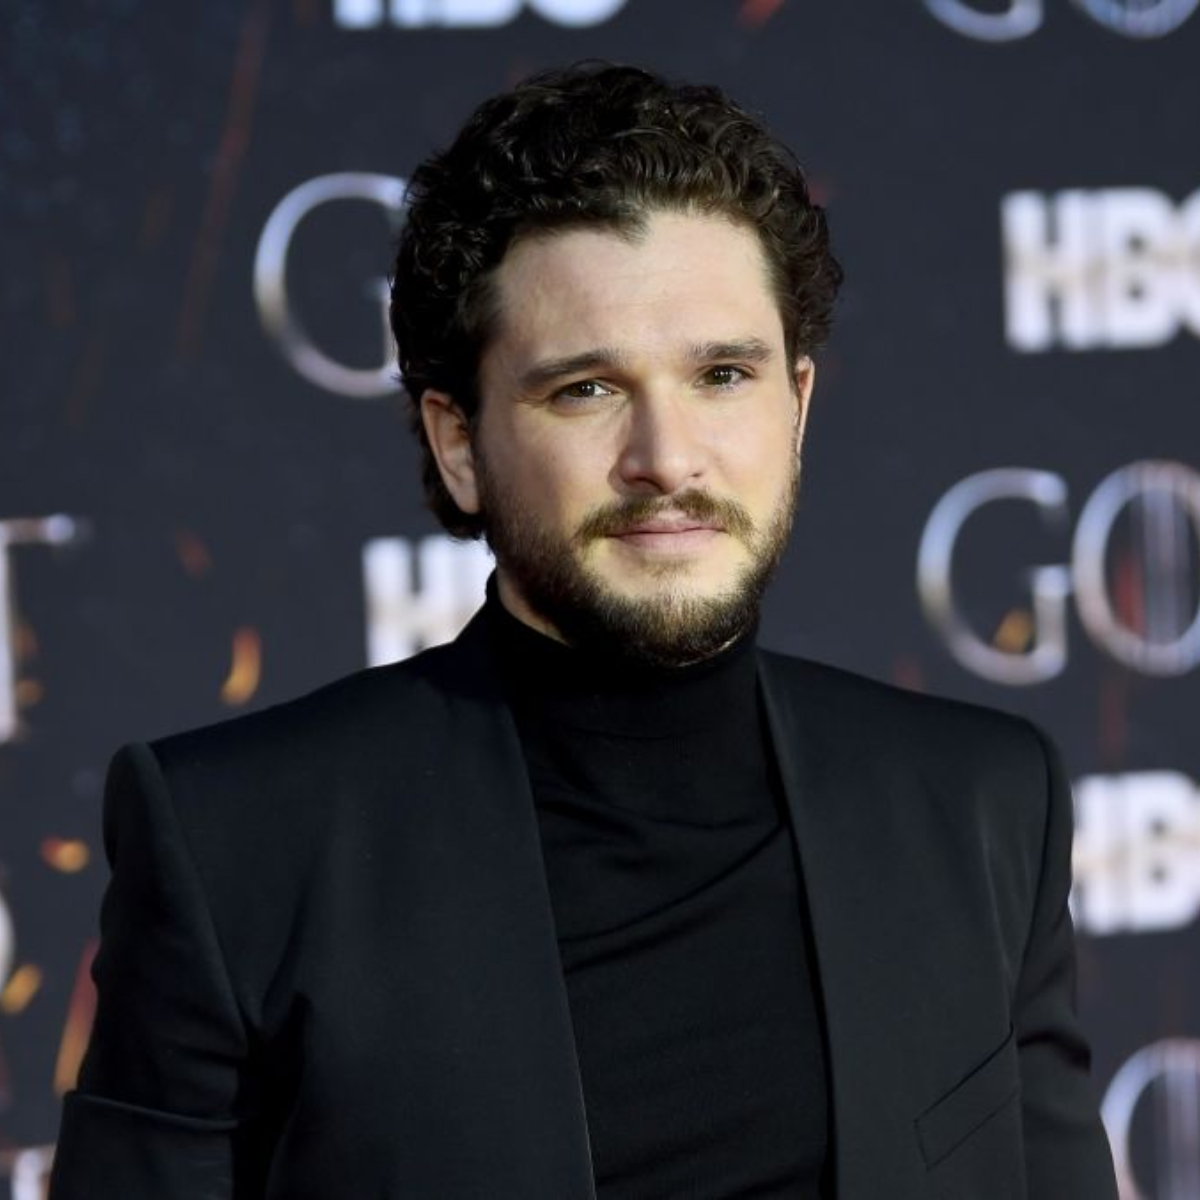 Game of Thrones star Kit Harington reveals he was INTIMIDATED by Jon Snow as a character; Here's WHY